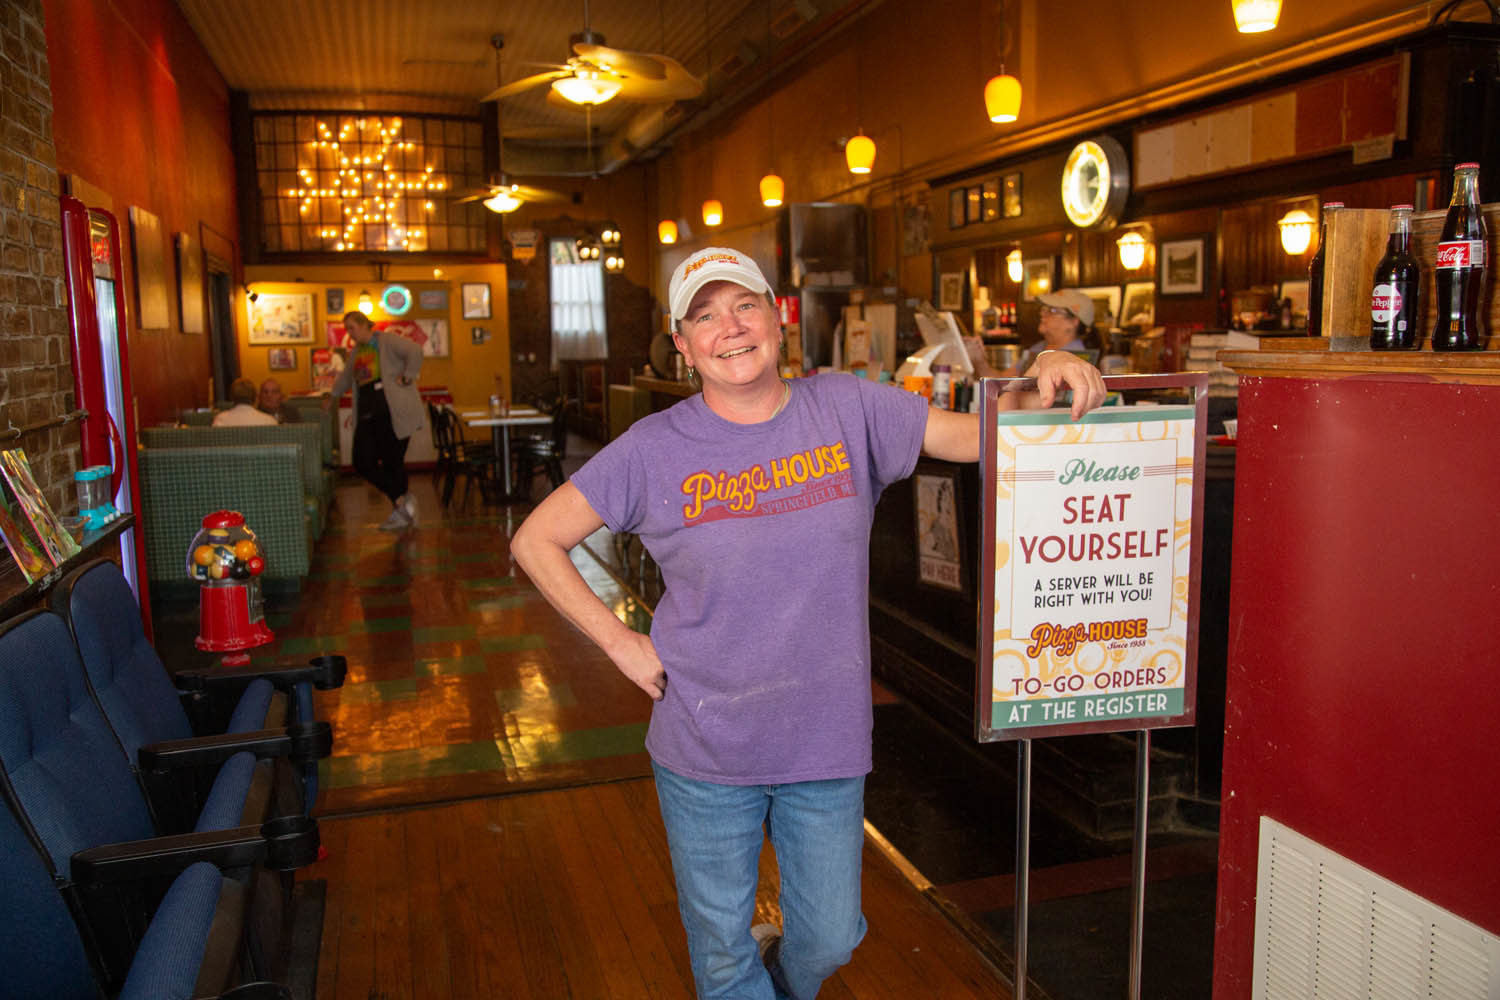 CONSISTENT STYLE: Pizza House, owned by Stacey Schneider since 2008, continues serving up the same thin crust style of pizza it began making over six decades ago.